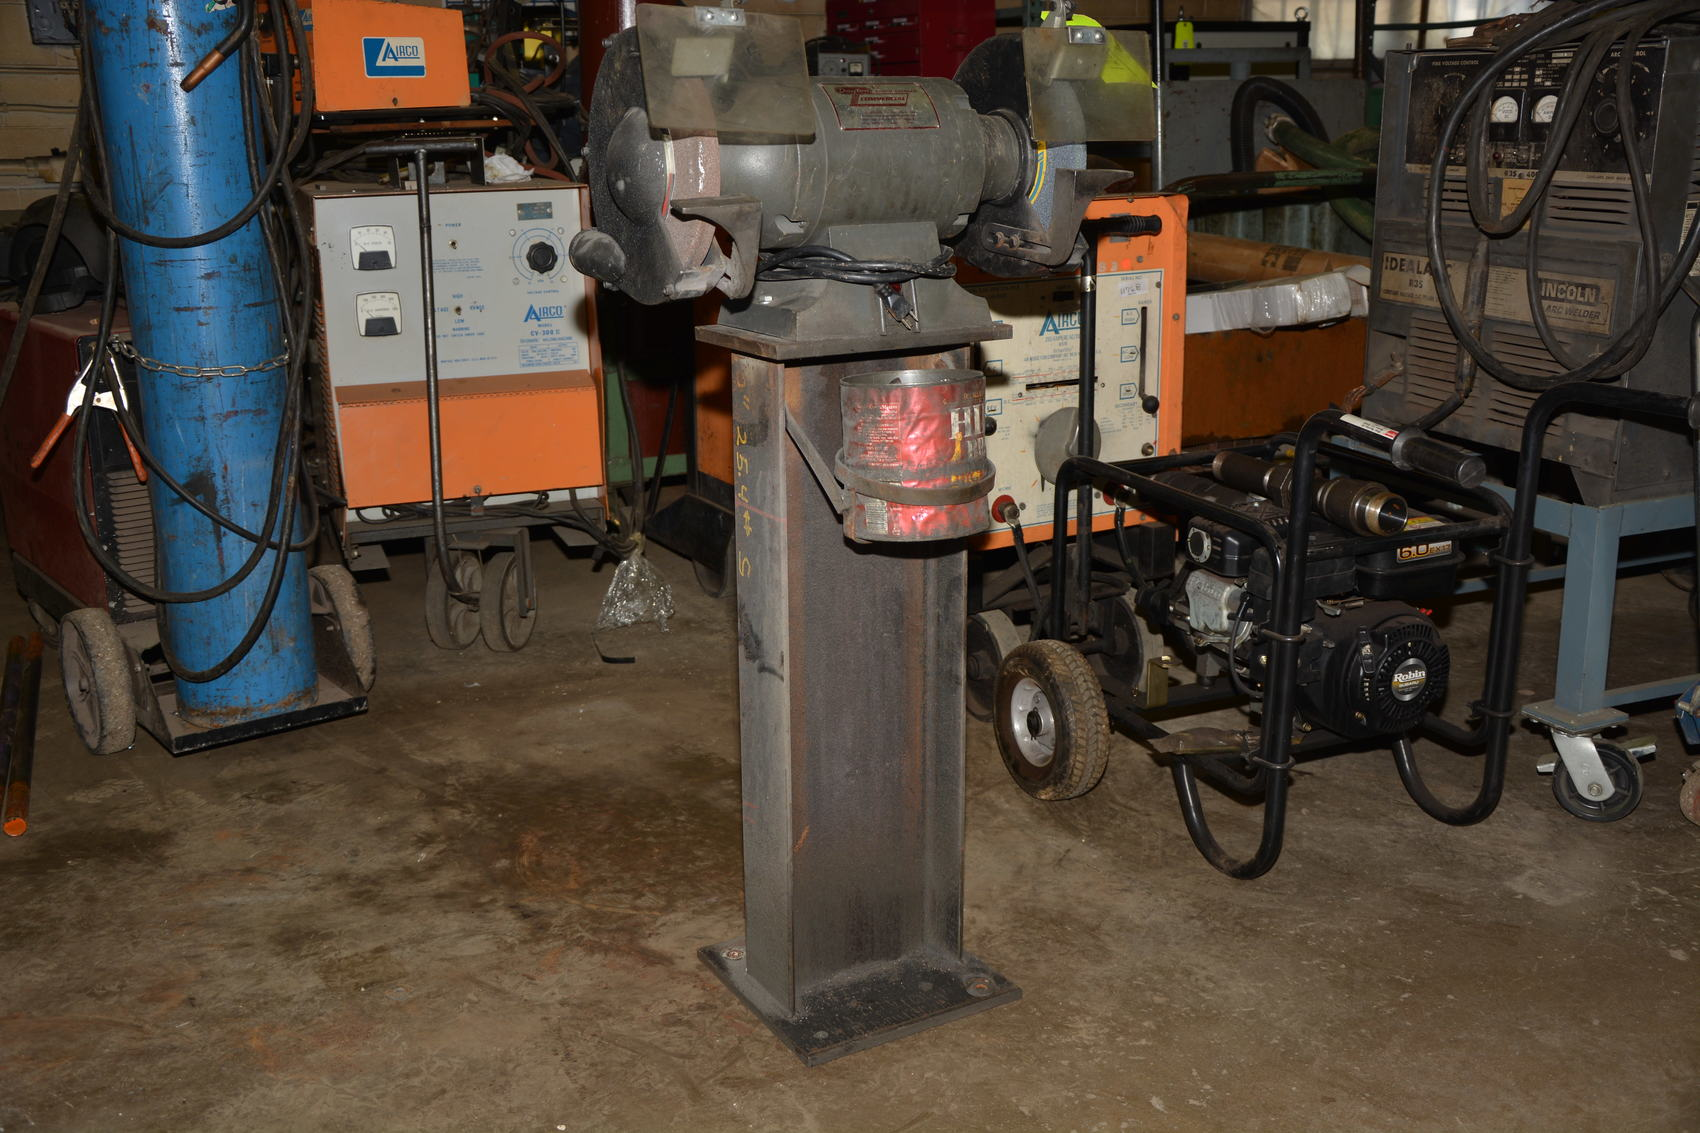 Dayton 10 Quot Double End Single Phase Bench Grinder 1 Hp